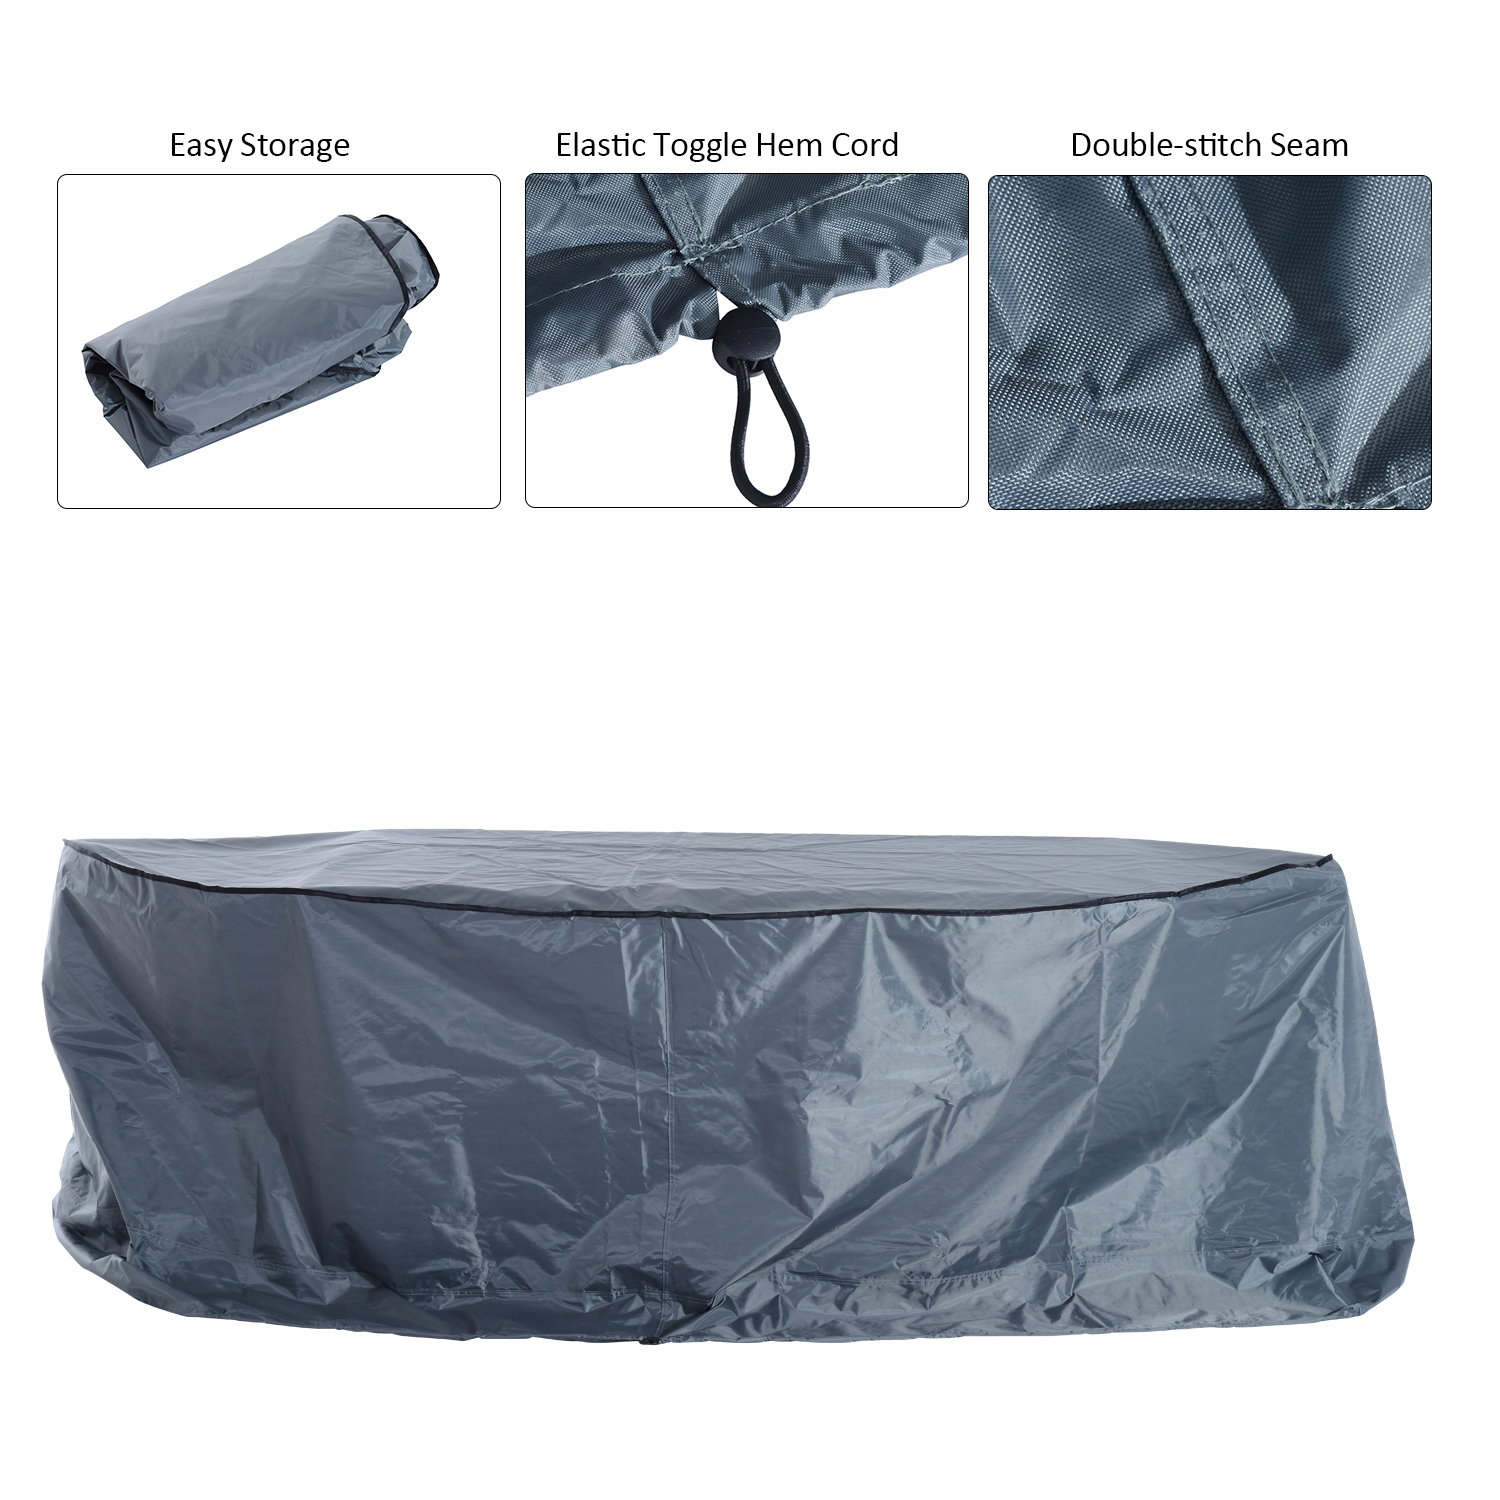 Image of £24.99 Outsunny Furniture Cover, Waterproof-Grey / Outdoor Garden 2-3 Seater Sofa Cover Waterproof Set Water Resistant All-weather Shelter Protection Oxford 84B-065 5056029892671